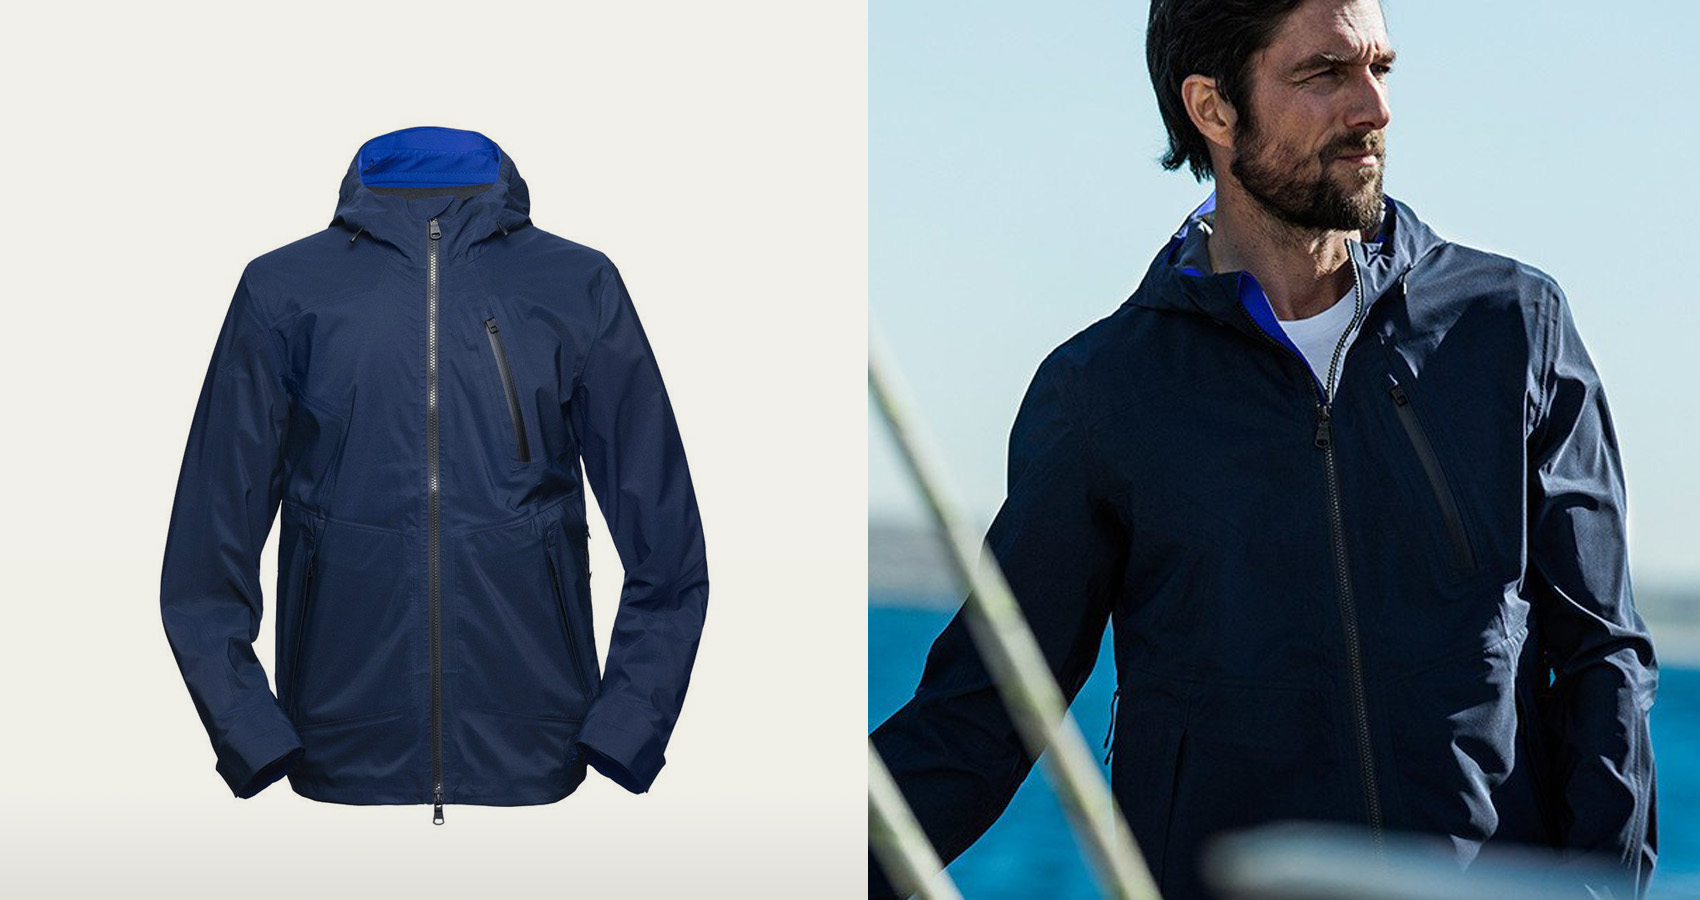 Outdoor Aesthetics | Our favourite waterproof jackets for spring